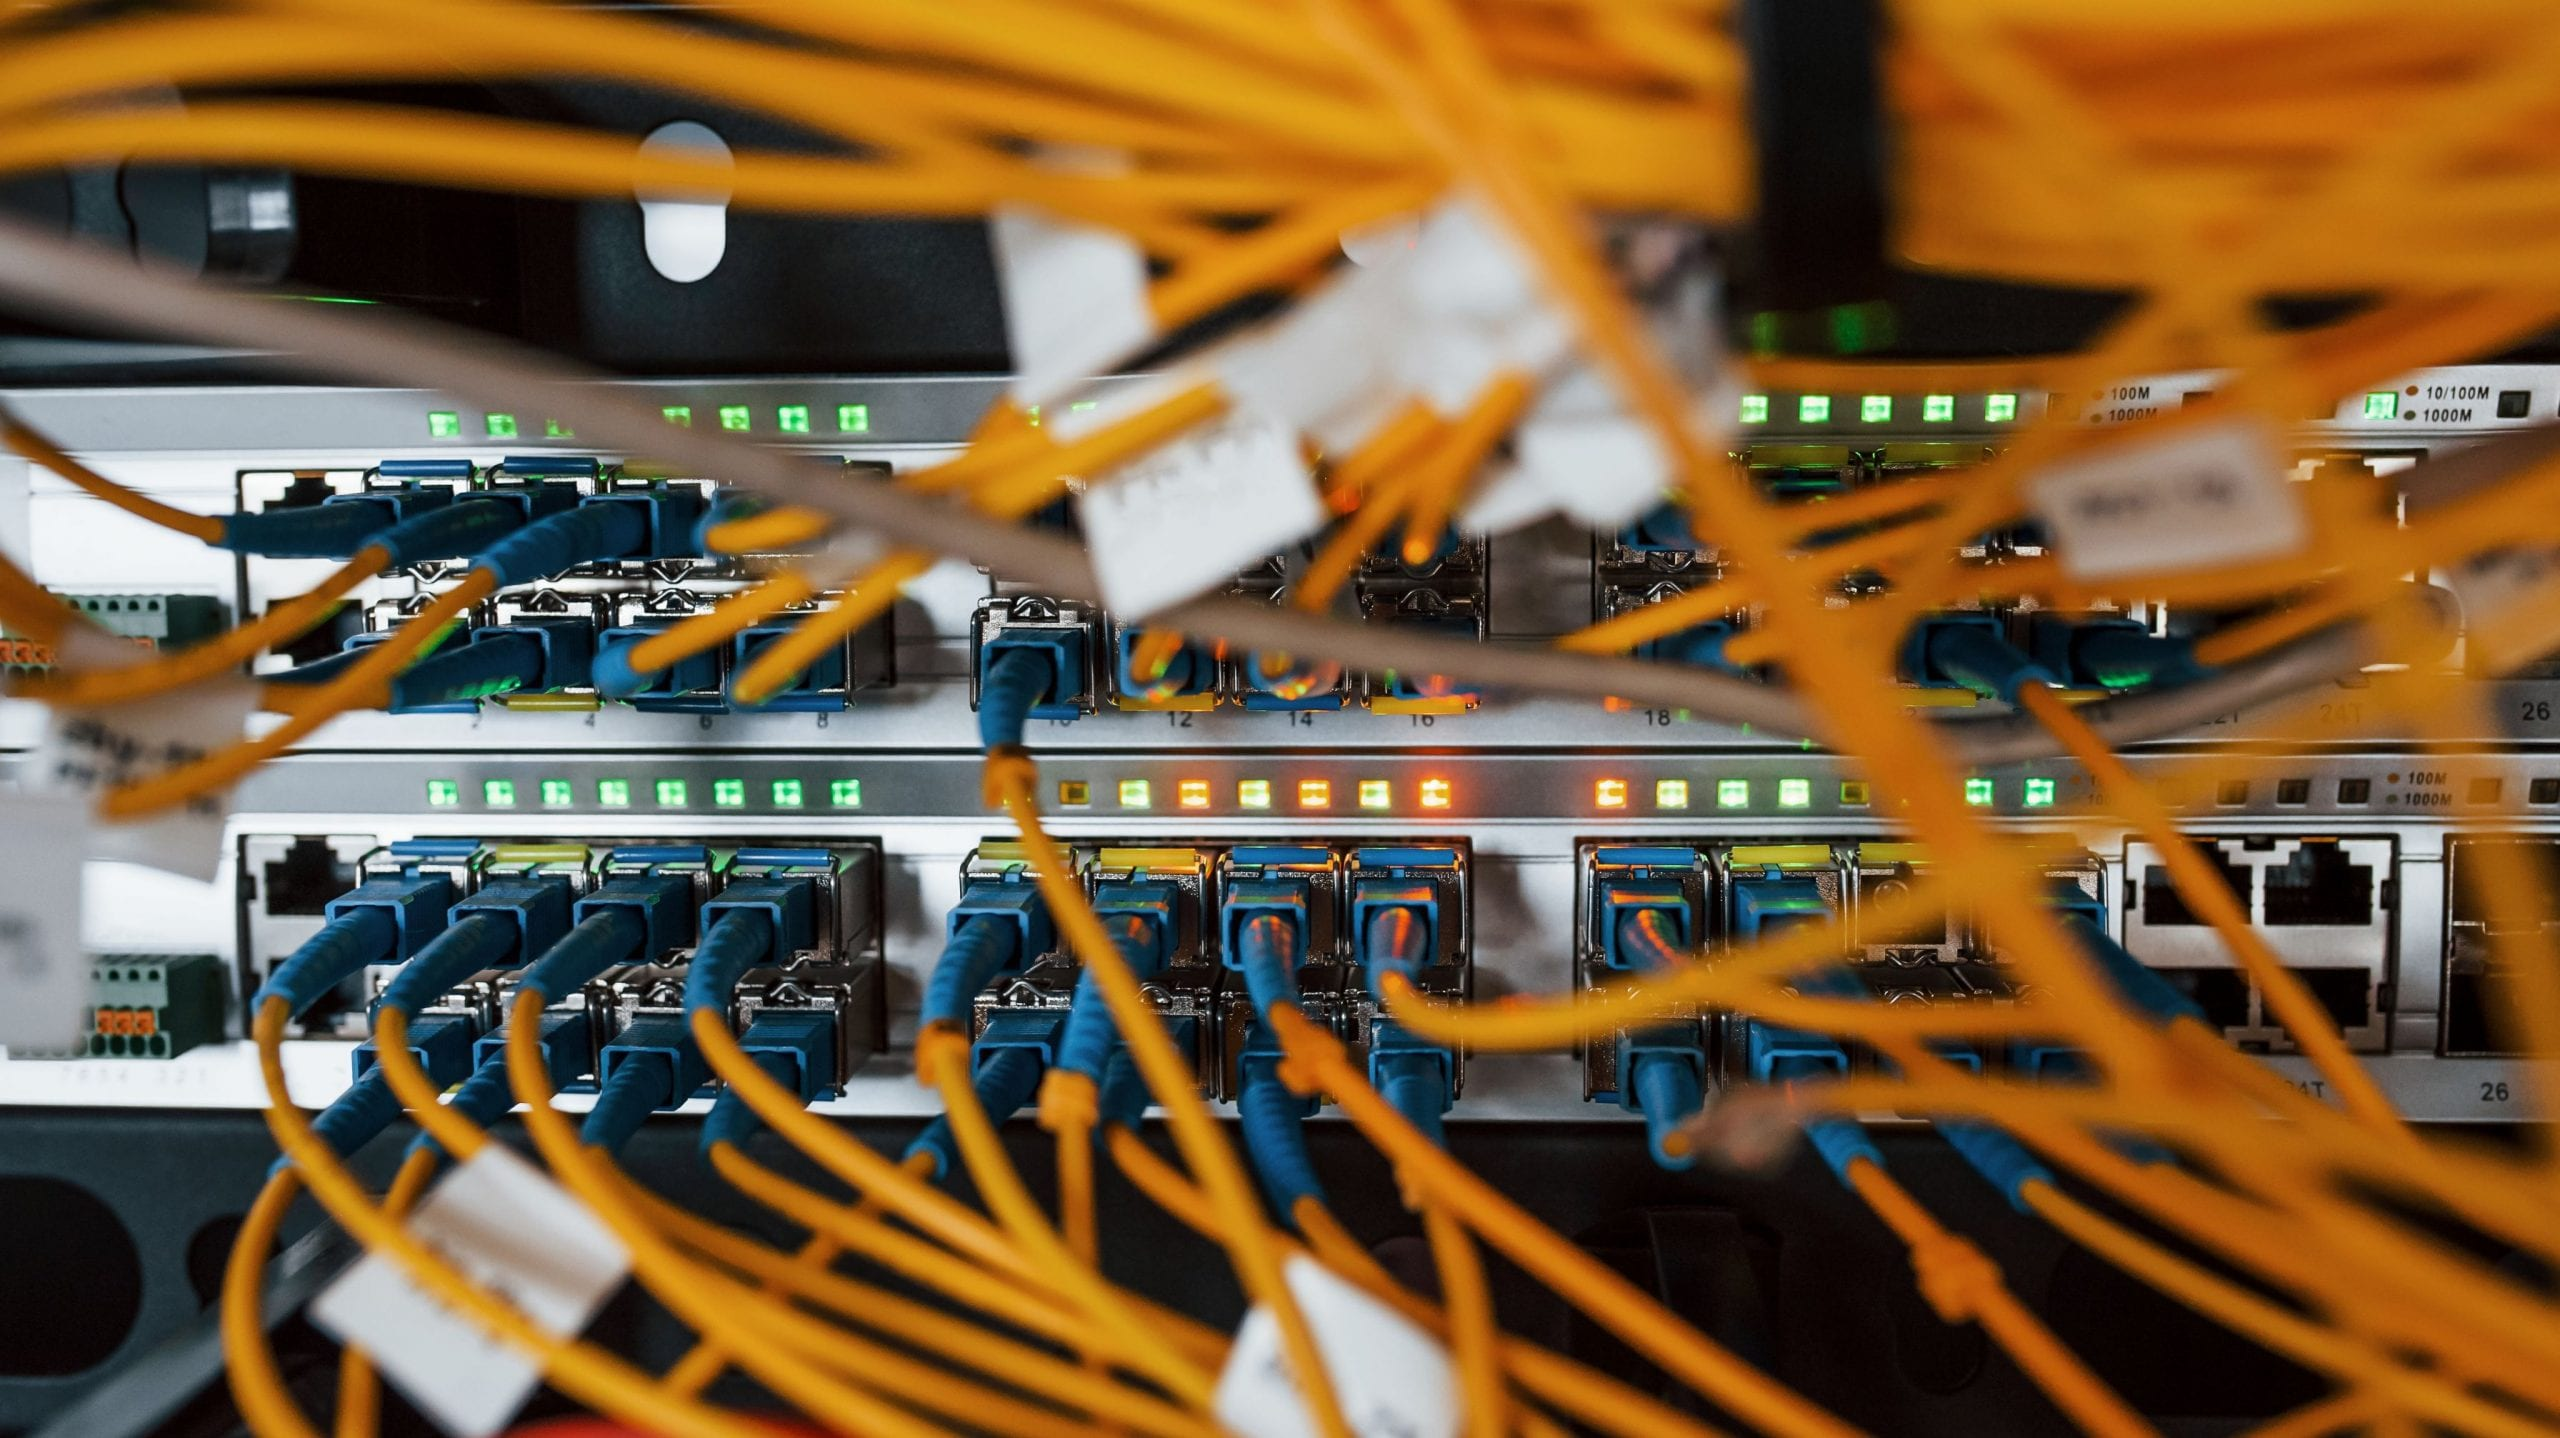 cloud based server, structured cabling